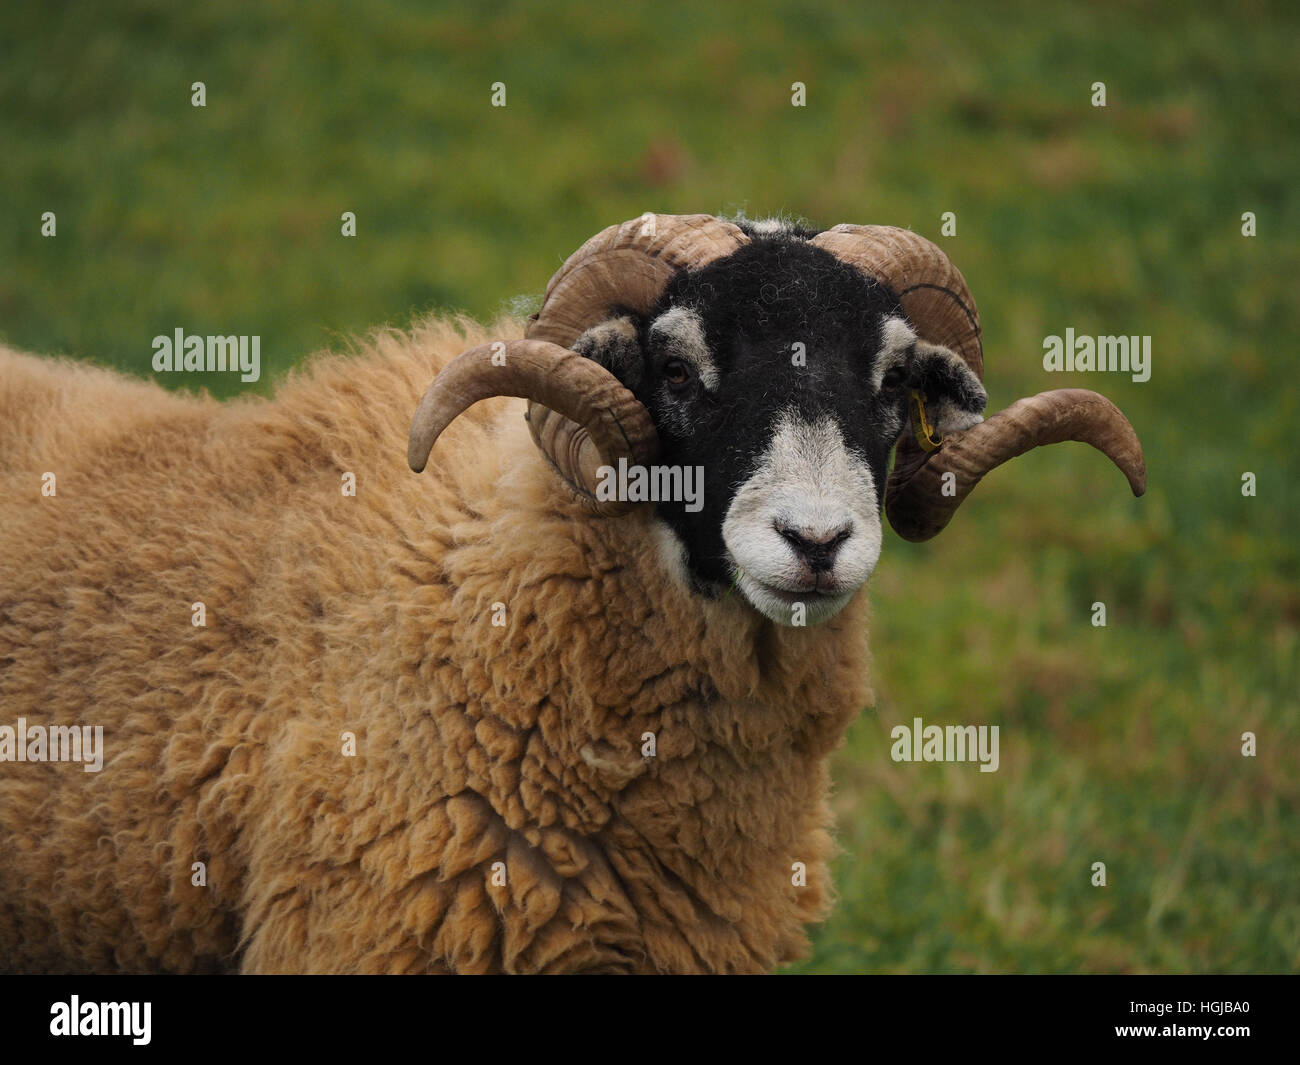 black-faced hill sheep ram looking straight at camera in grassy field with spiral curly horns and thick fleece - Stock Image